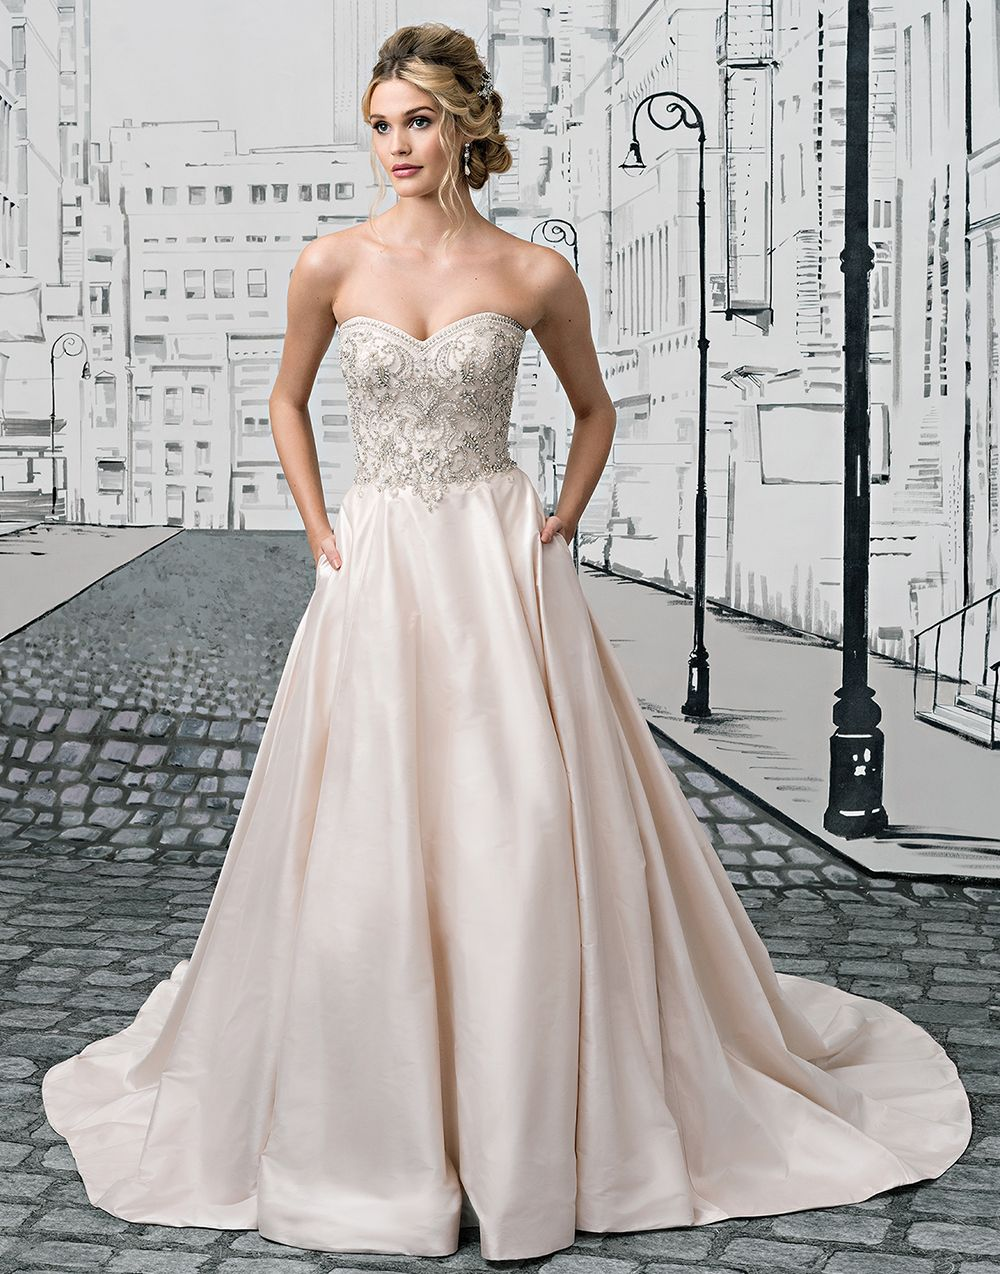 Trendy wedding dresses  Justin Alexander wedding dresses style  You will shine in this